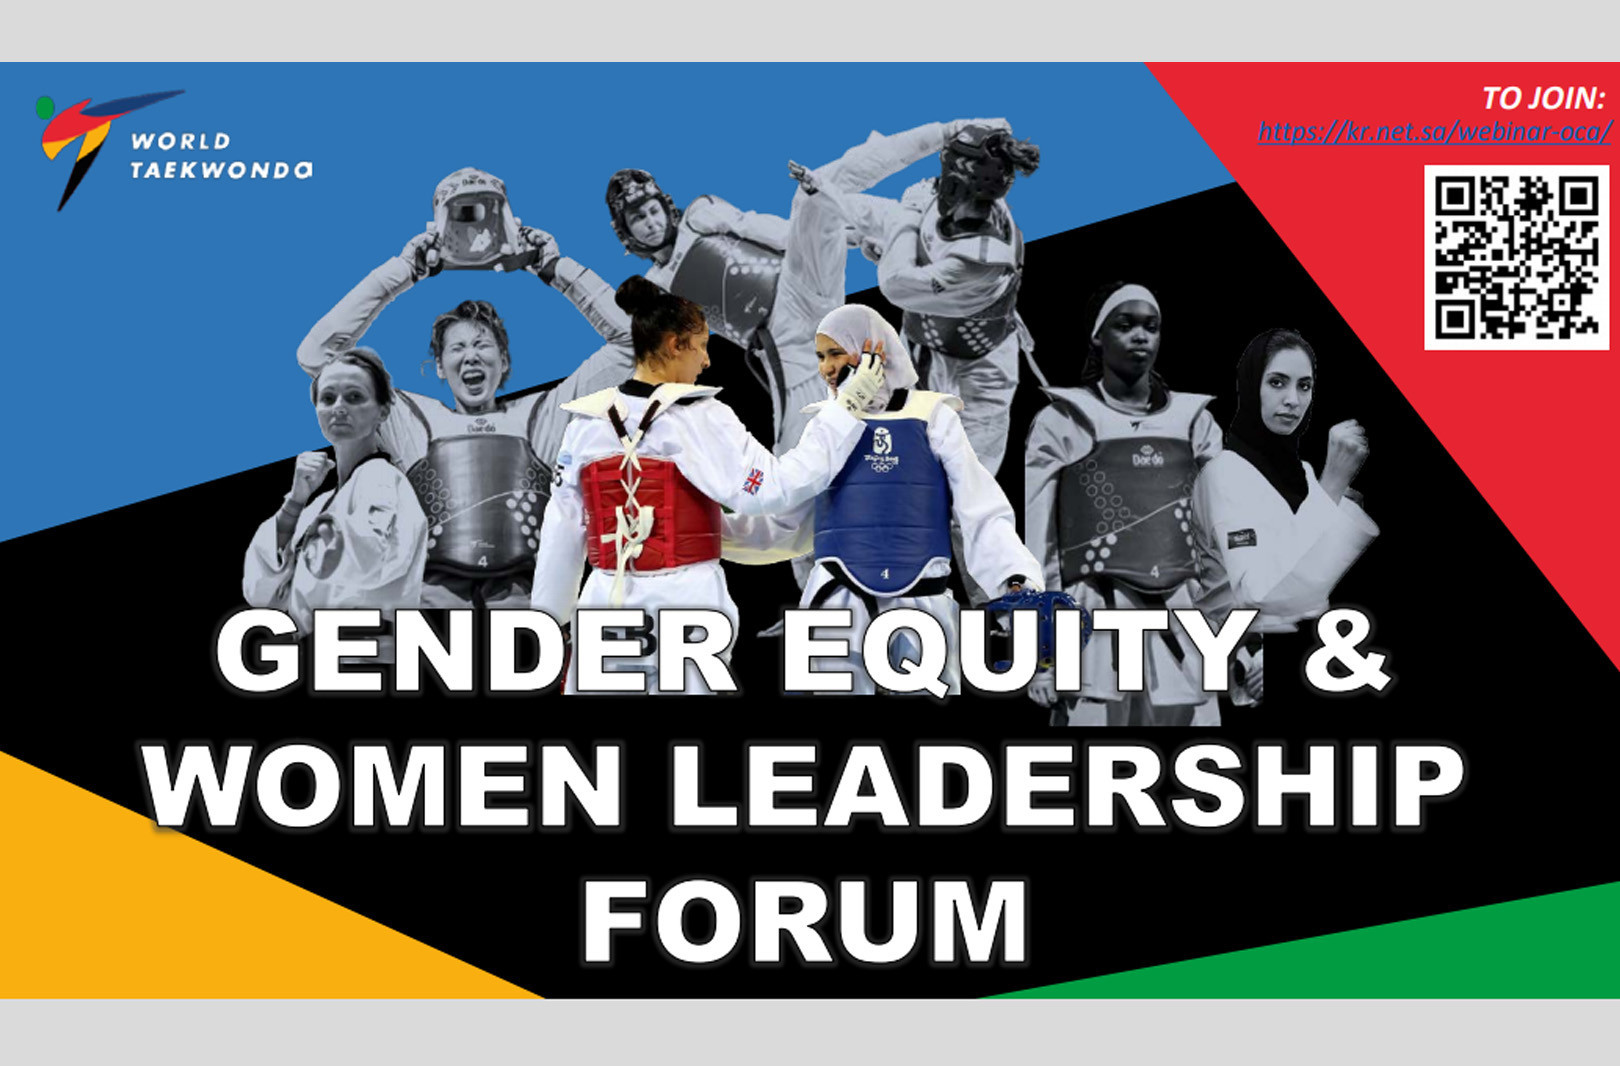 Bach set to give speech at World Taekwondo Gender Equity and Leadership Forum